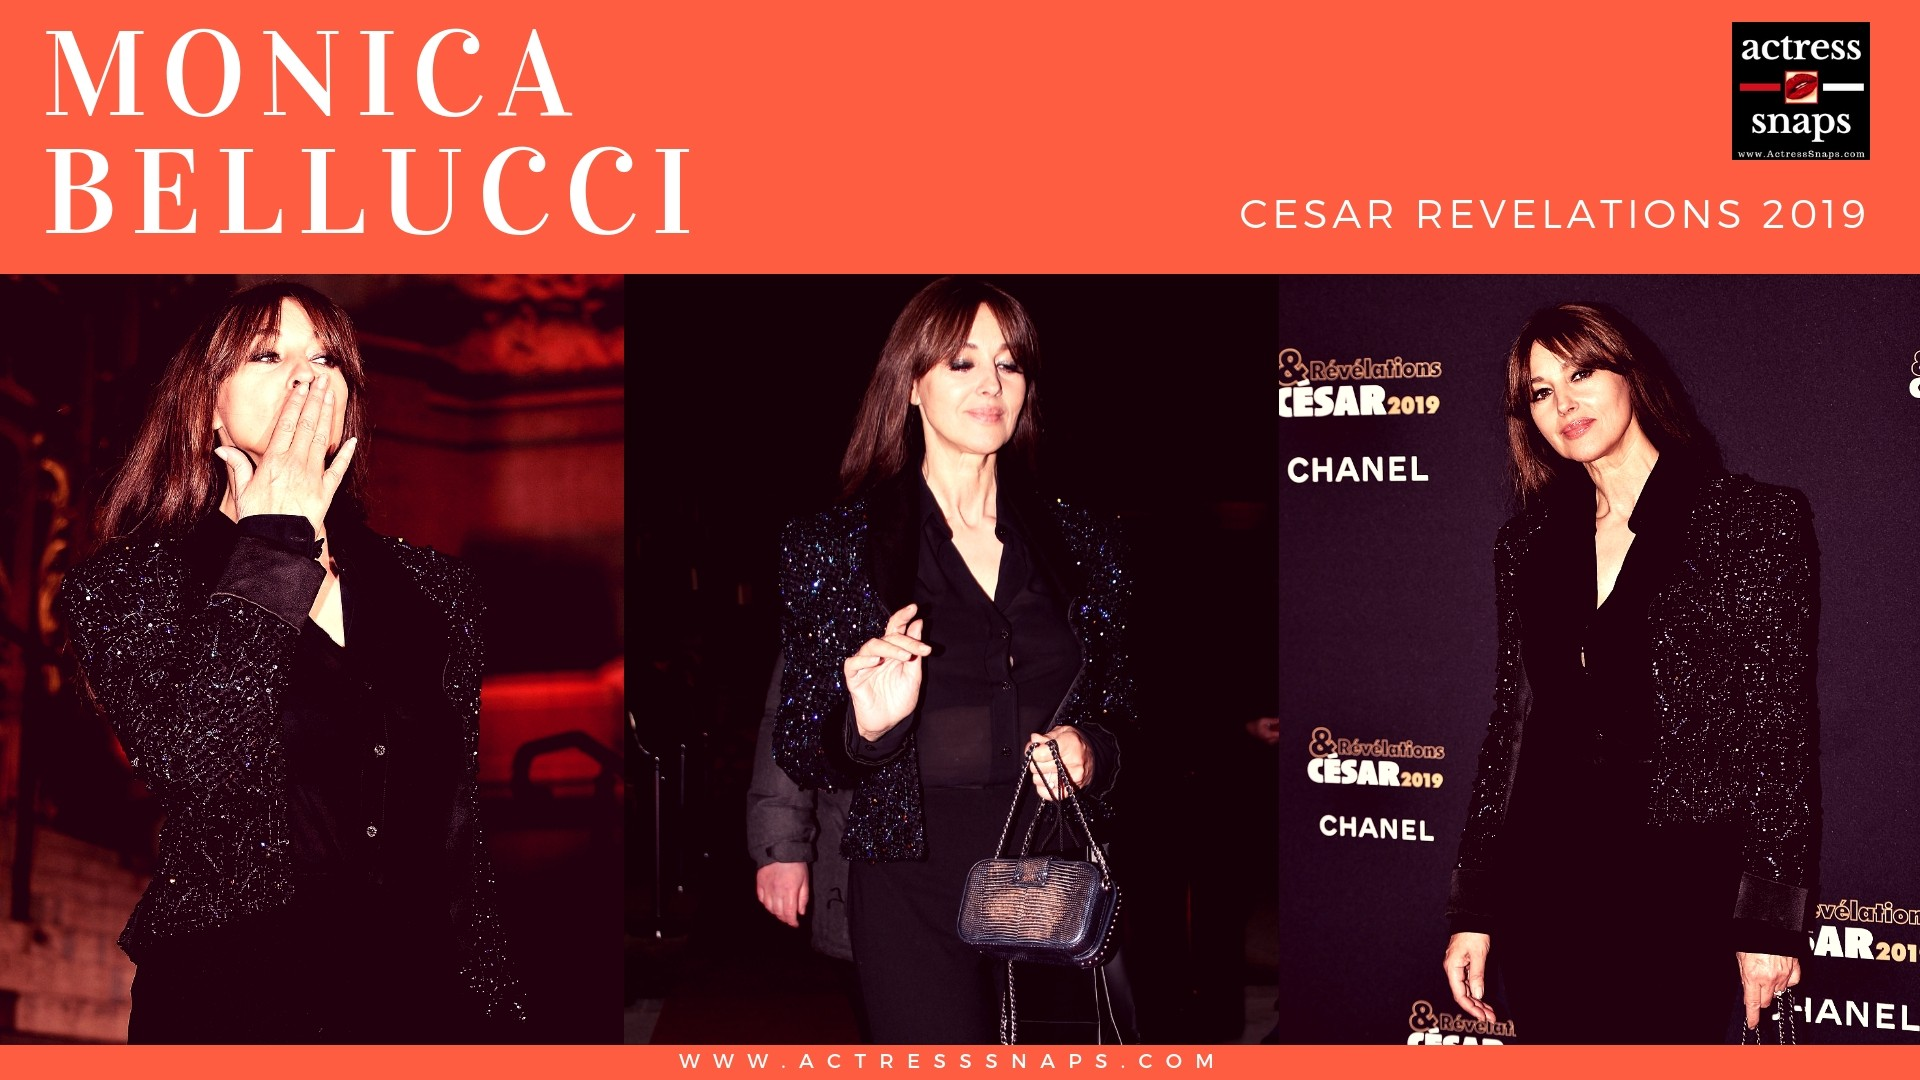 Monica Bellucci - Cesar Revelations 2019 - Sexy Actress Pictures | Hot Actress Pictures - ActressSnaps.com